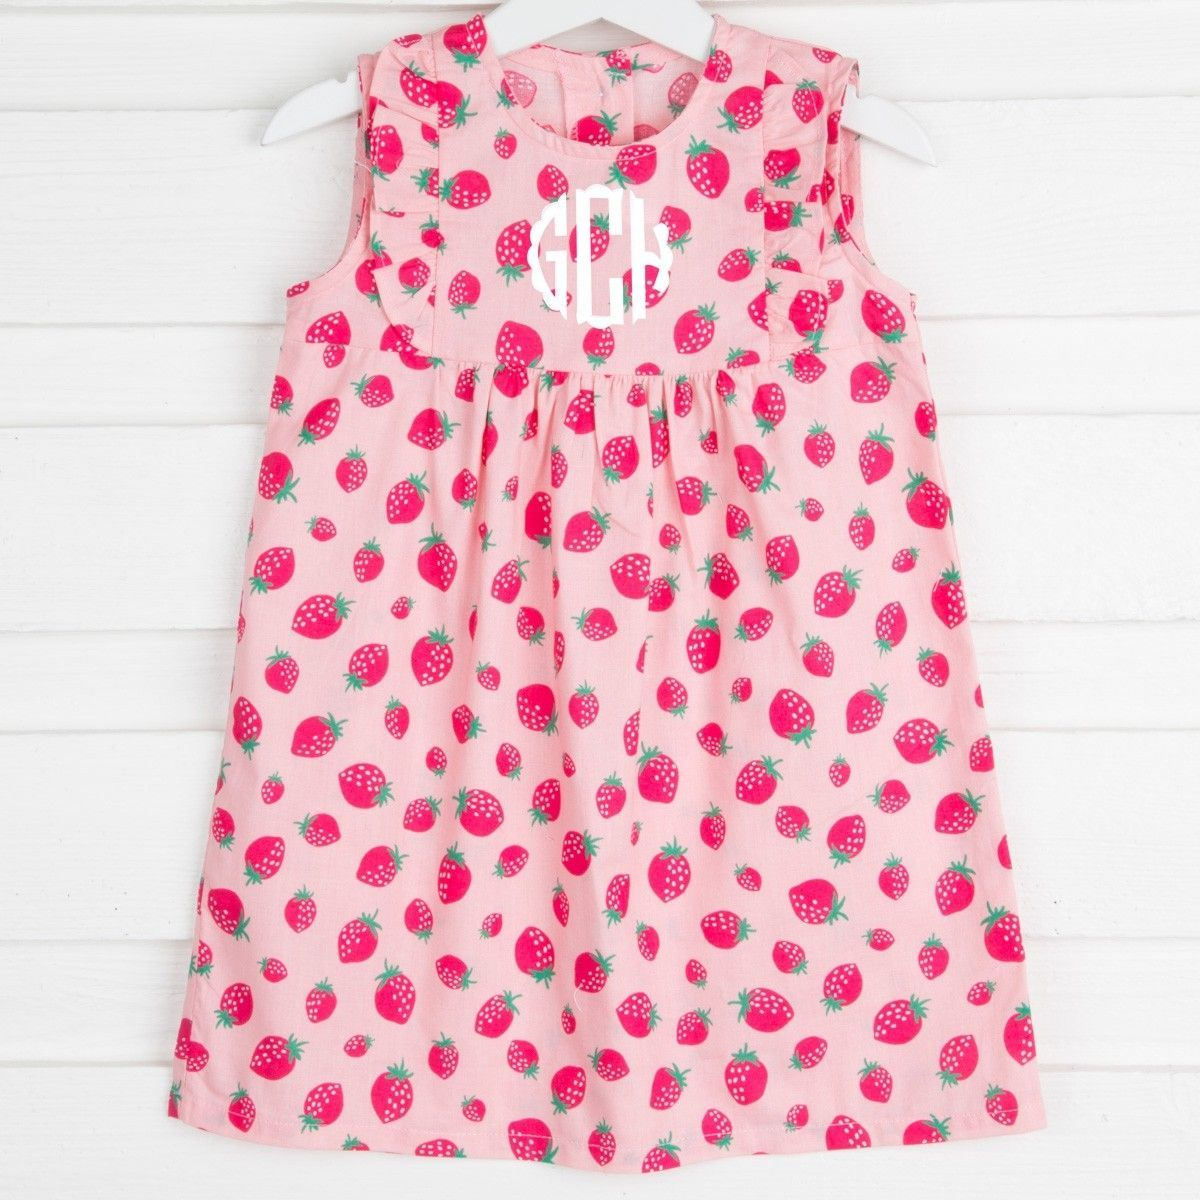 7bdab444352 Strawberry Patch Kate Dress Pink - Dresses - 3T  summerdresses3t ...